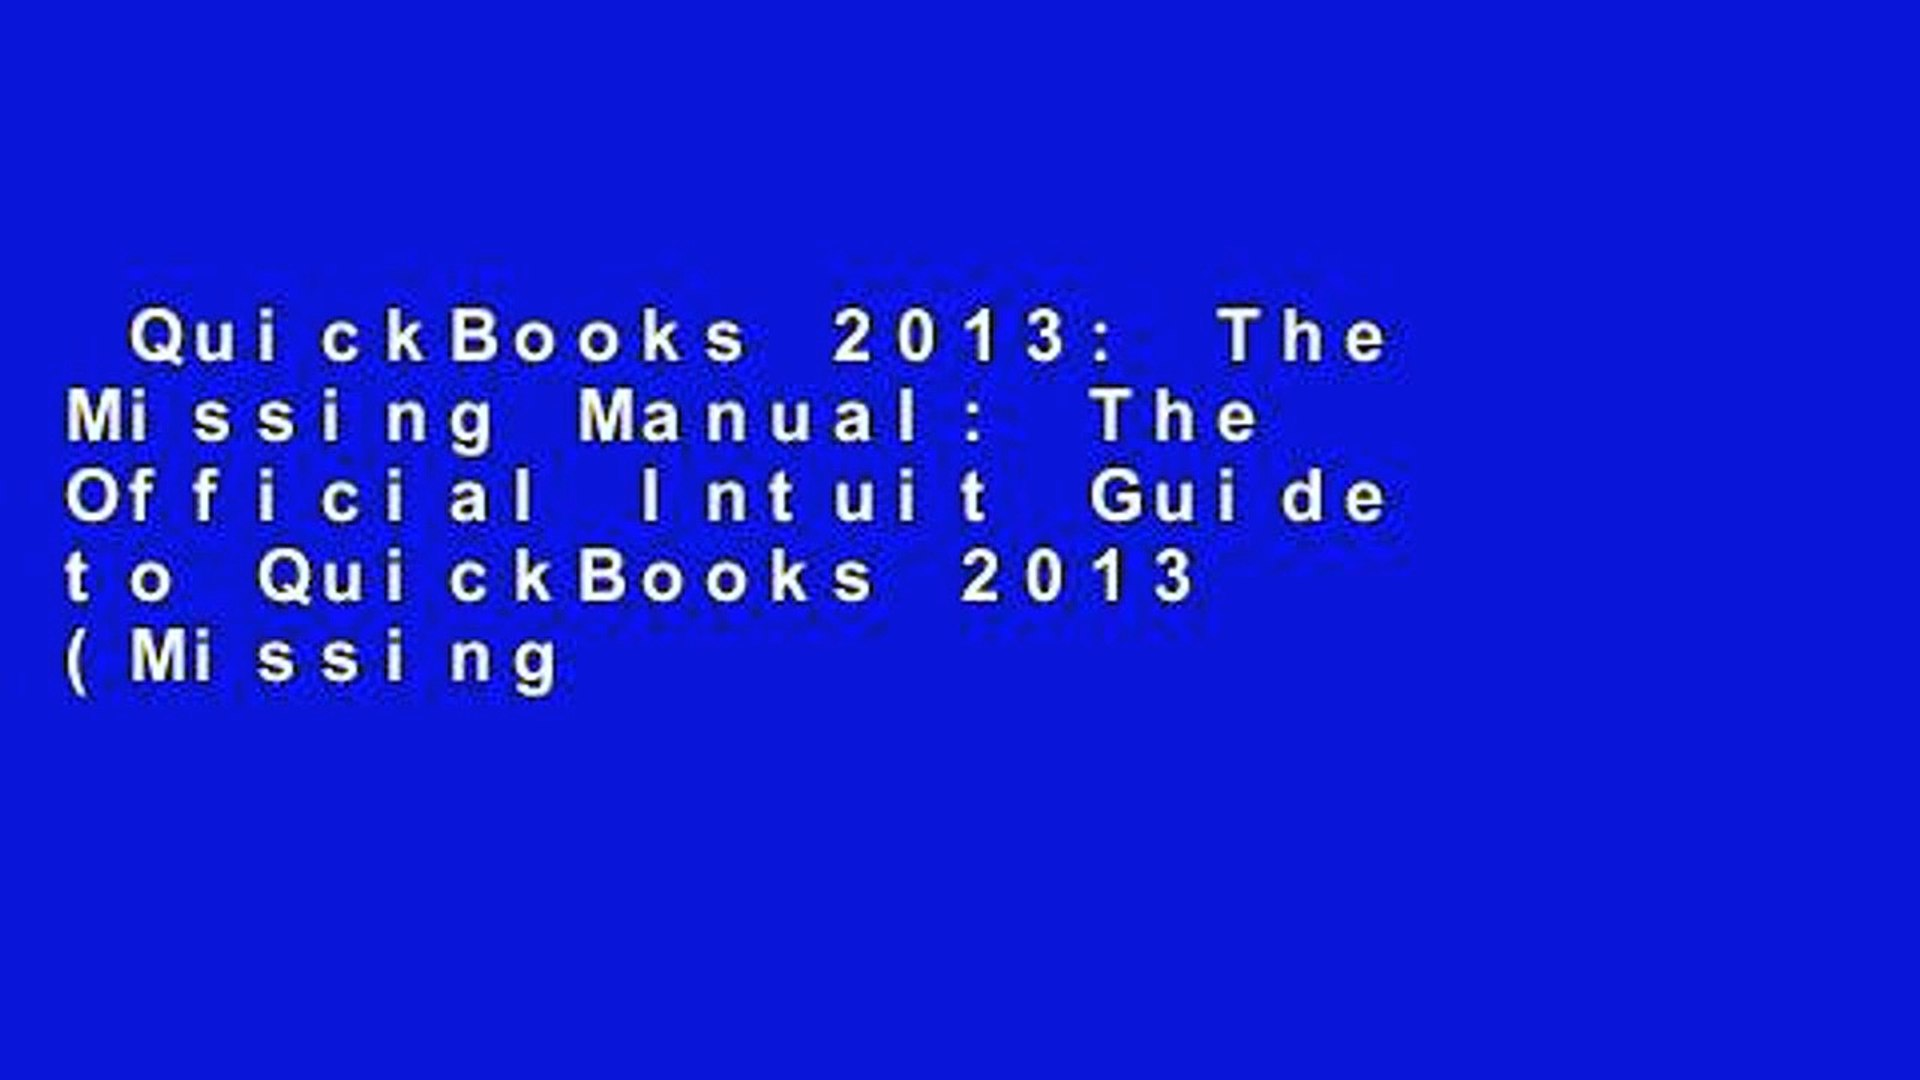 QuickBooks 2013: The Missing Manual: The Official Intuit Guide to QuickBooks 2013 (Missing